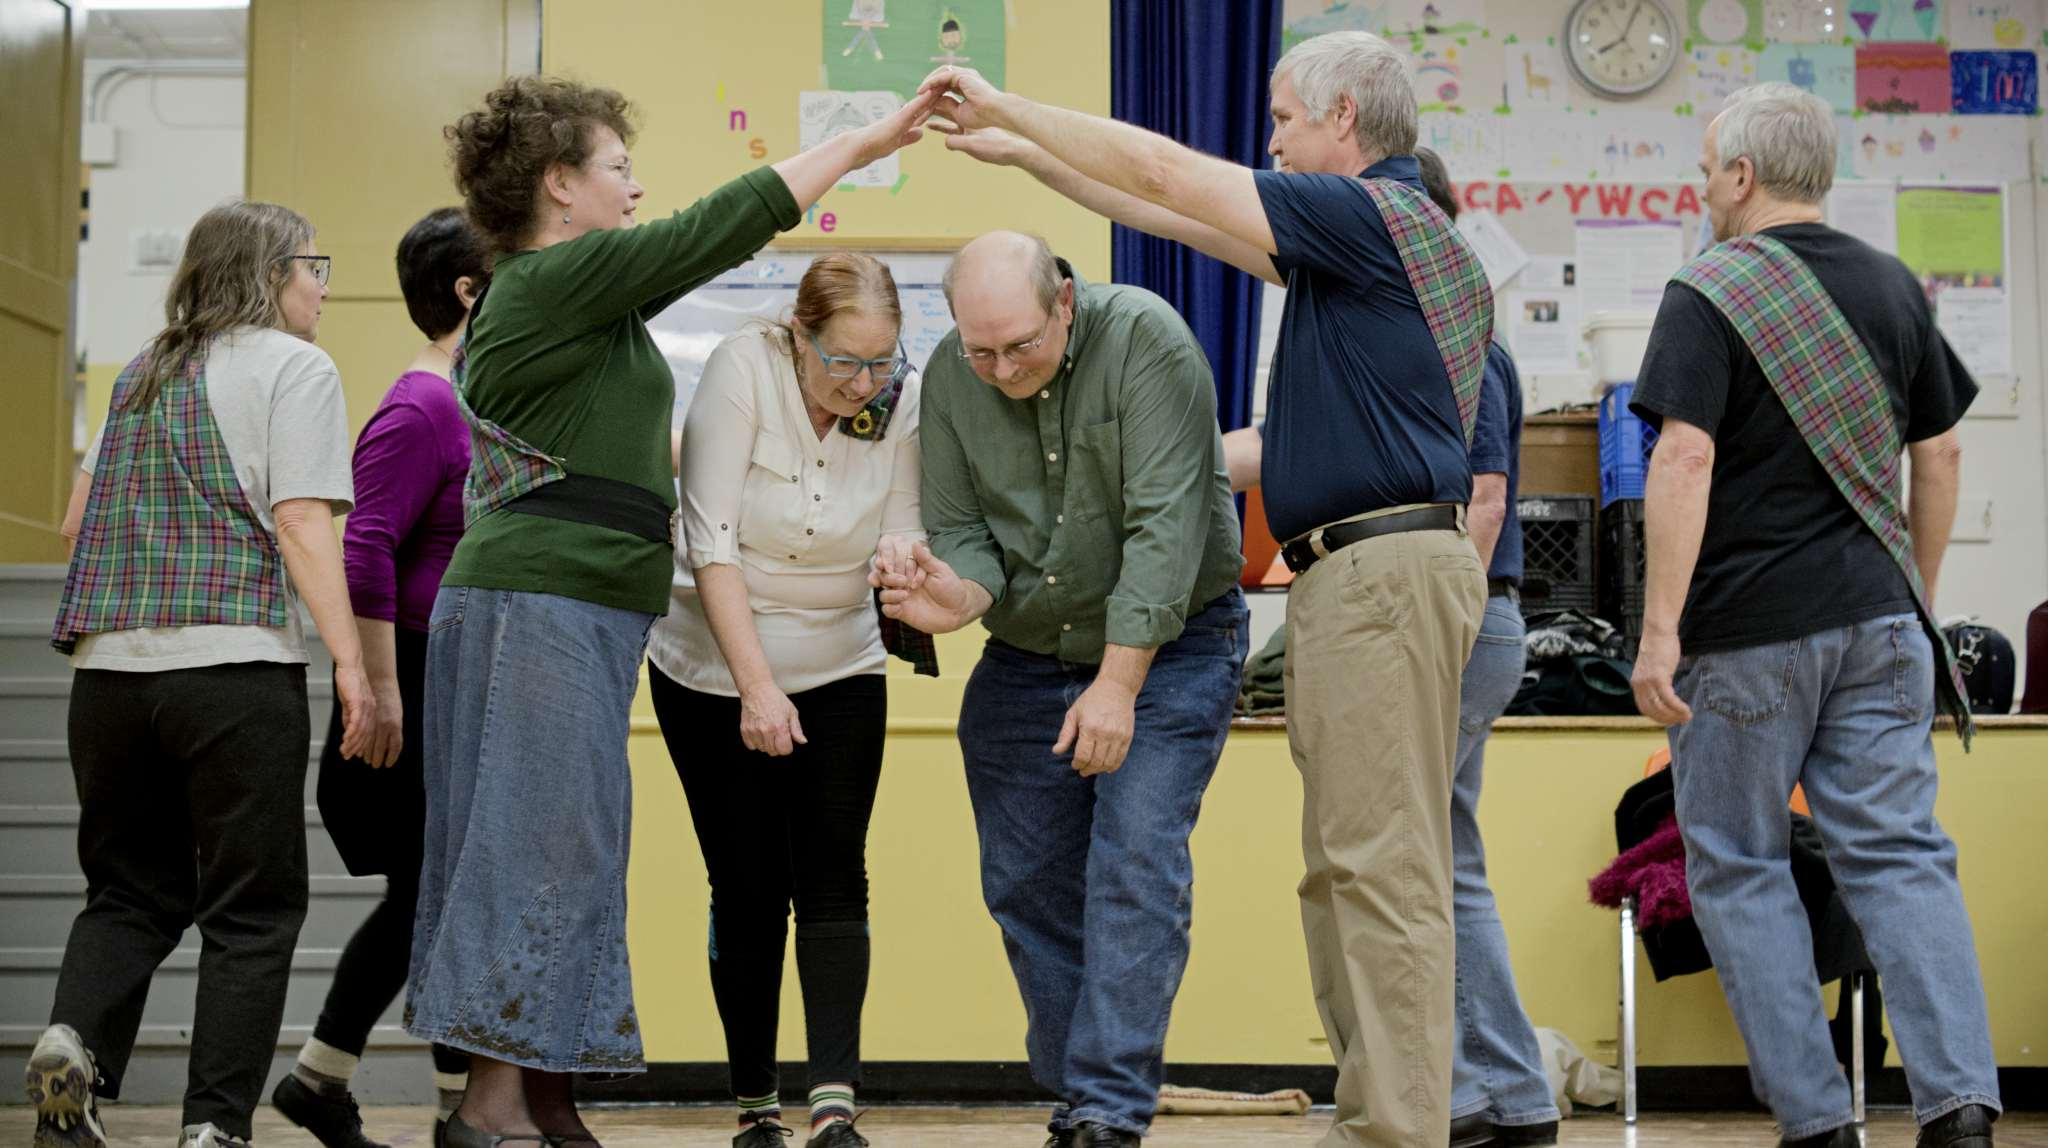 The Comhaltas Winnipeg Irish Setdancing Group meets each Monday at École Riverview School to practise traditional Irish folk dances and socialize.